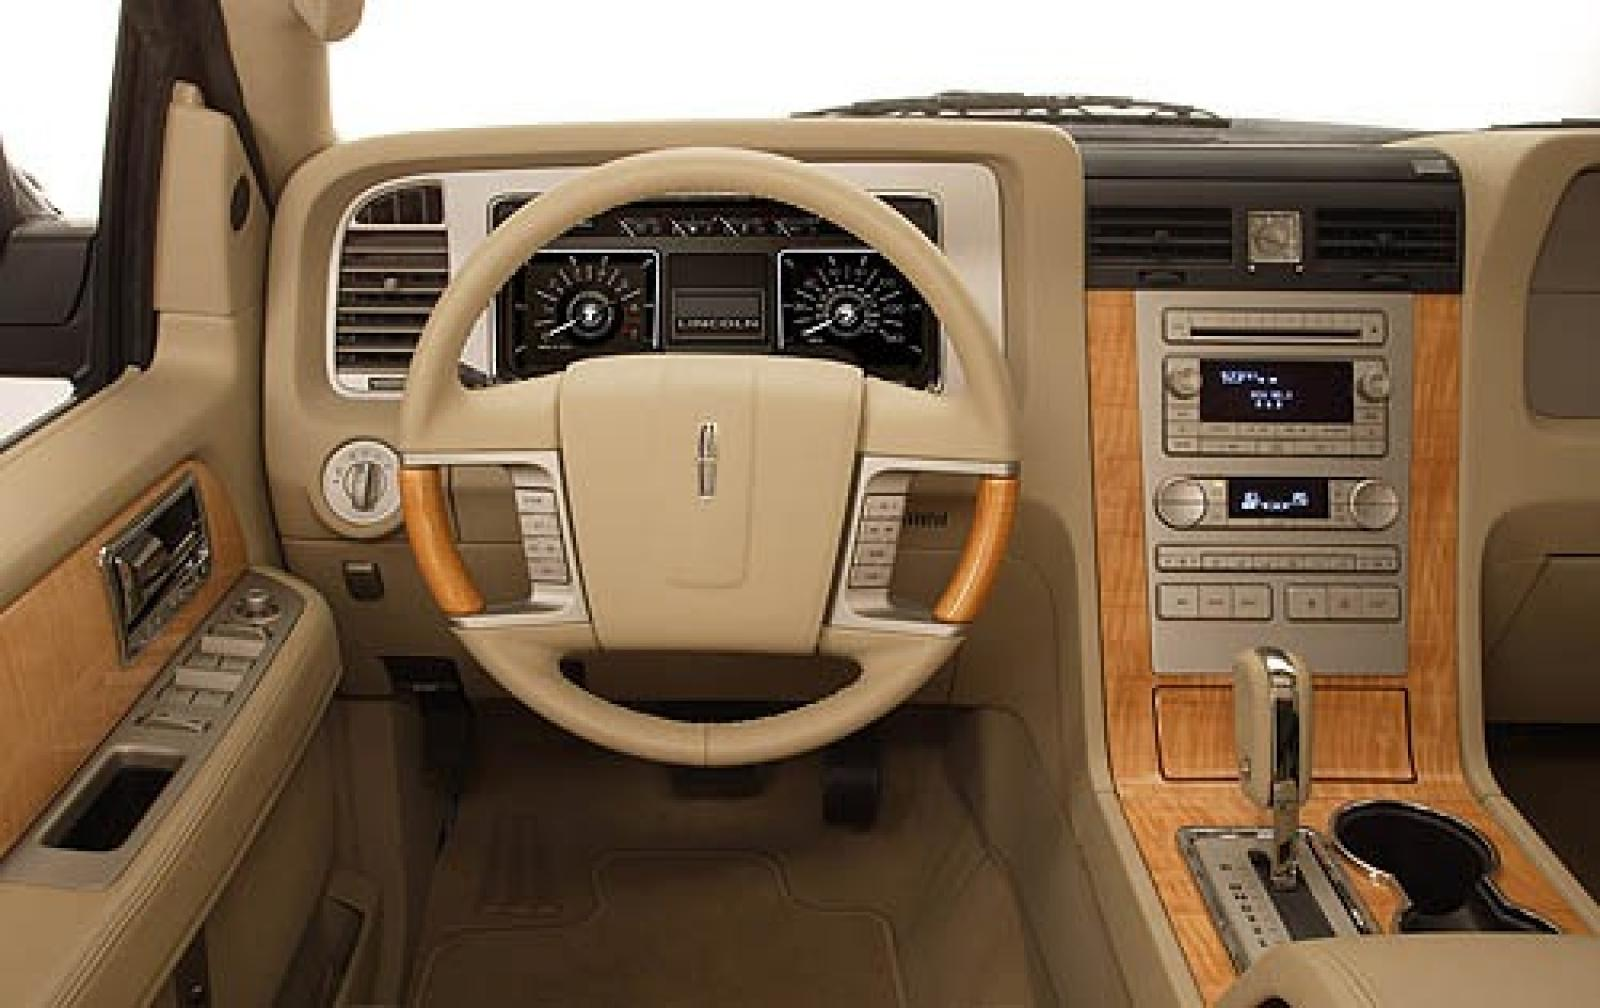 prices and reviews cars u south select s ca news trucks san navigator lincoln pictures francisco